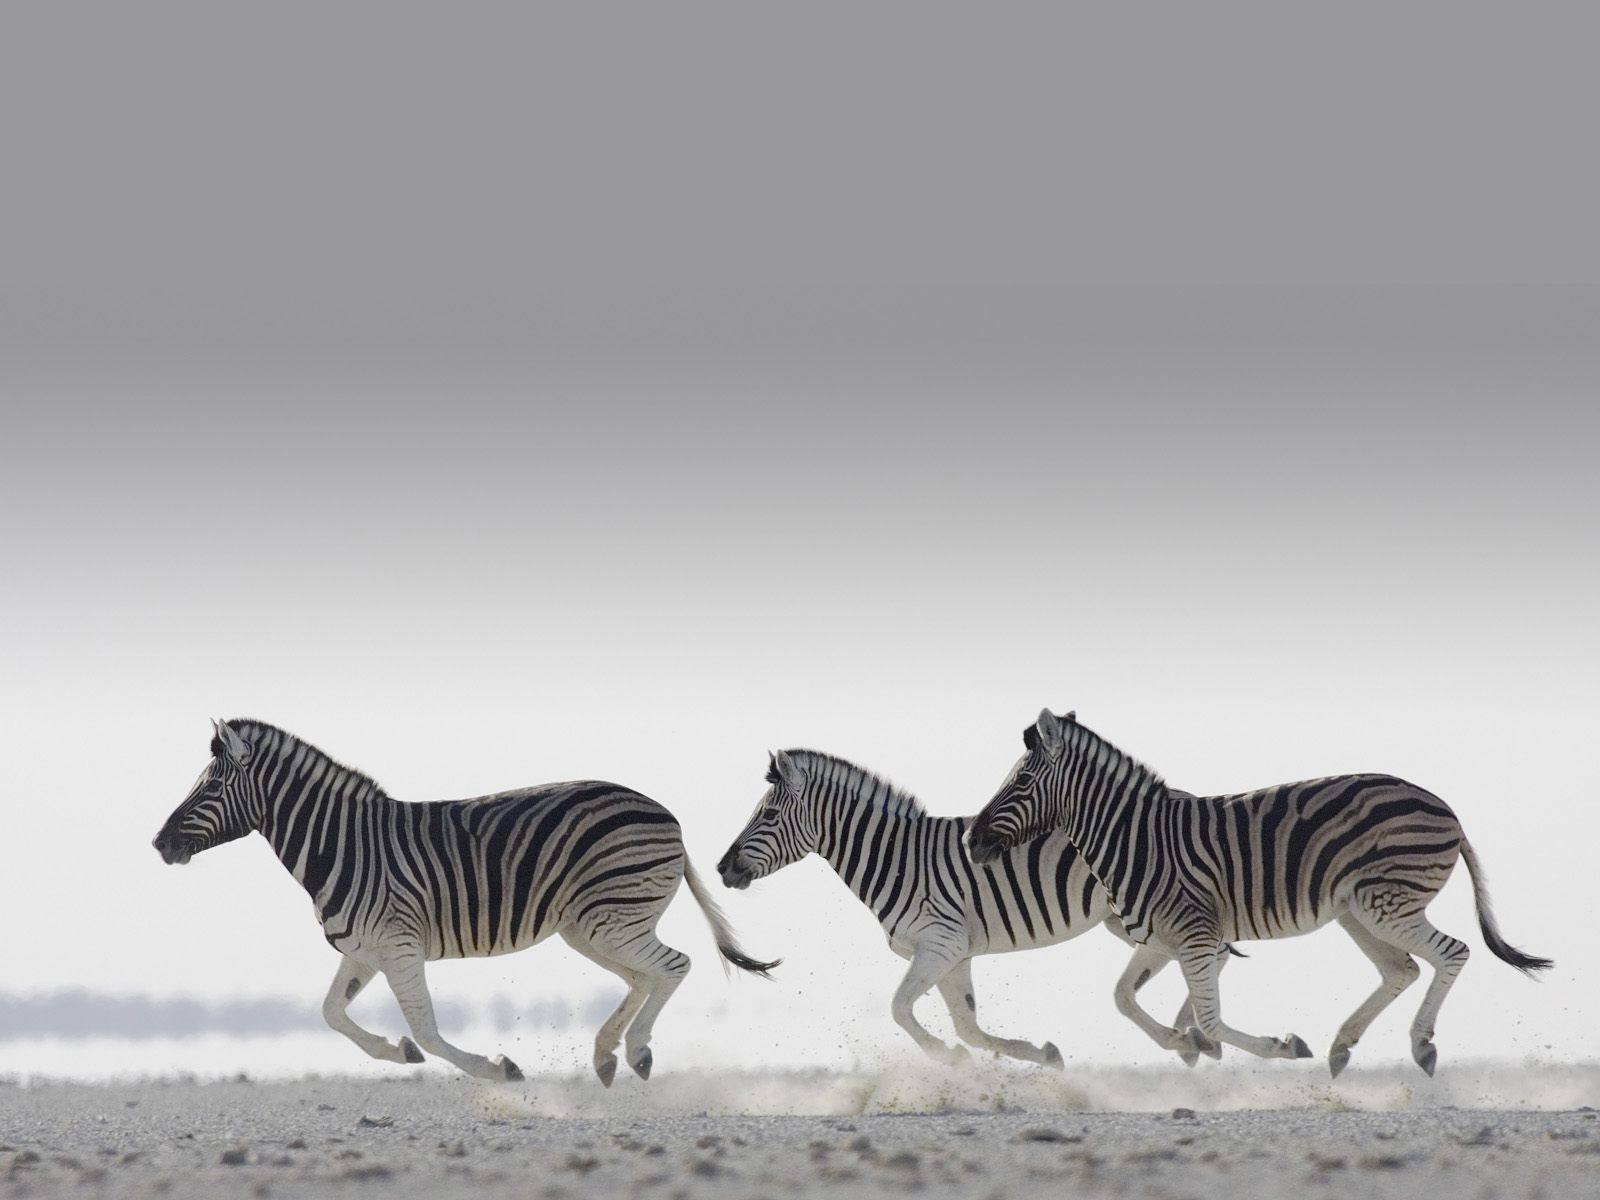 awesome zebra wallpaper 45552